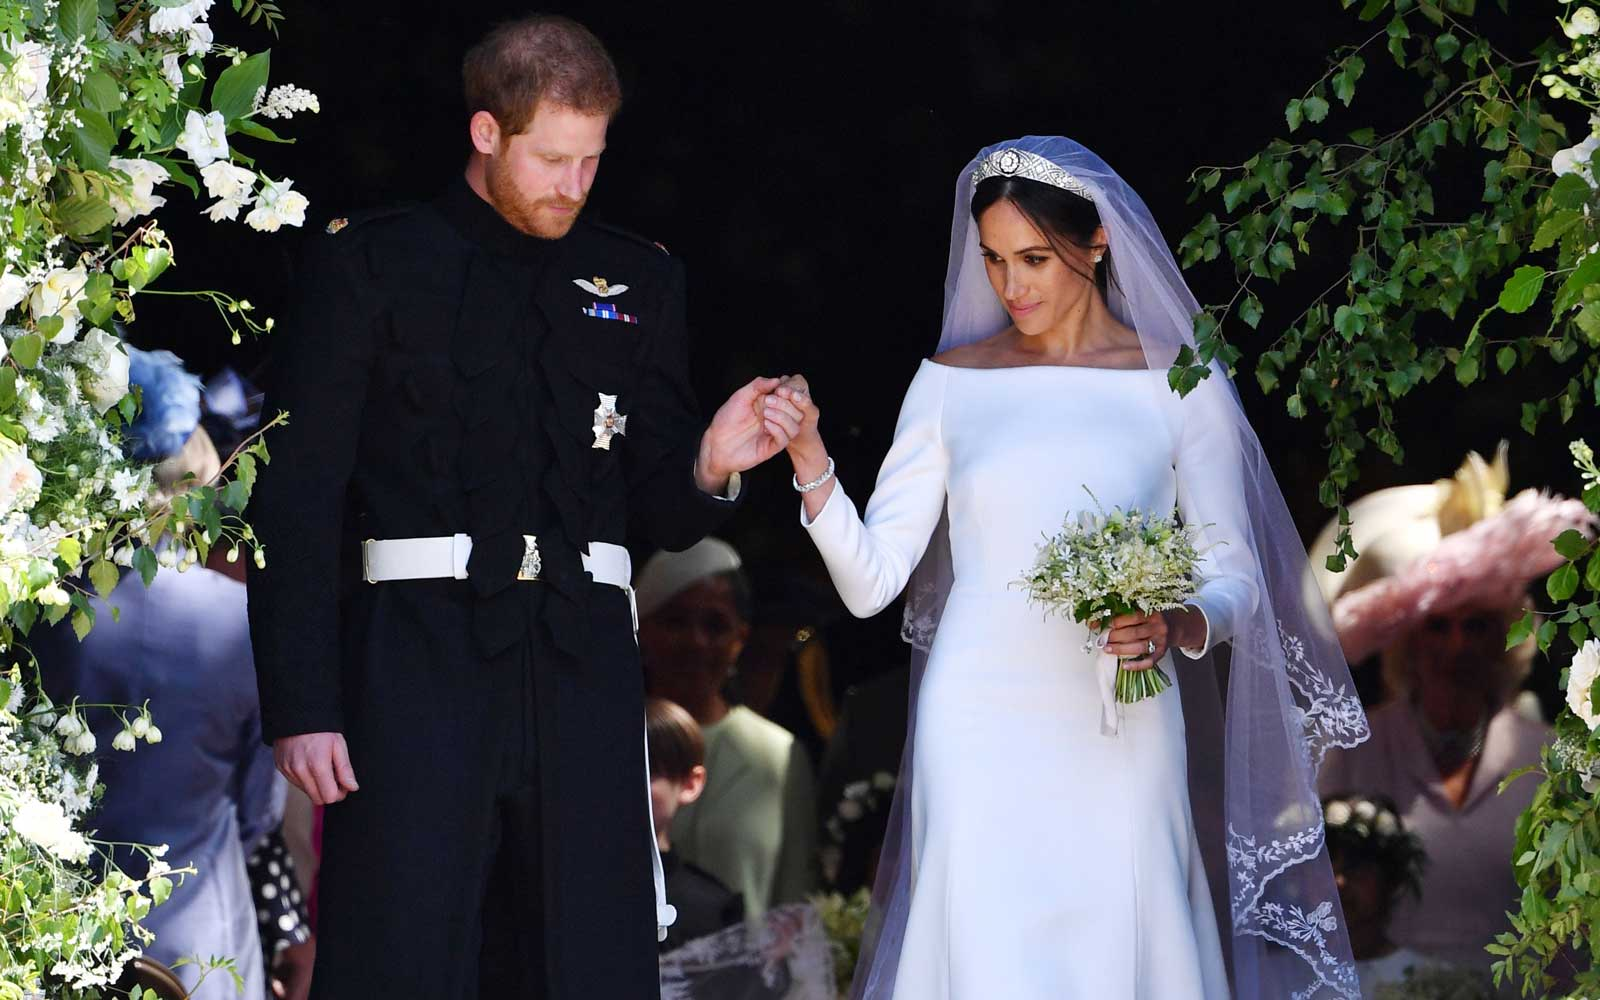 Prince Harry Had a Sweet Plan for the Royal Wedding — Here's What He Says 'Ruined the Whole Thing'